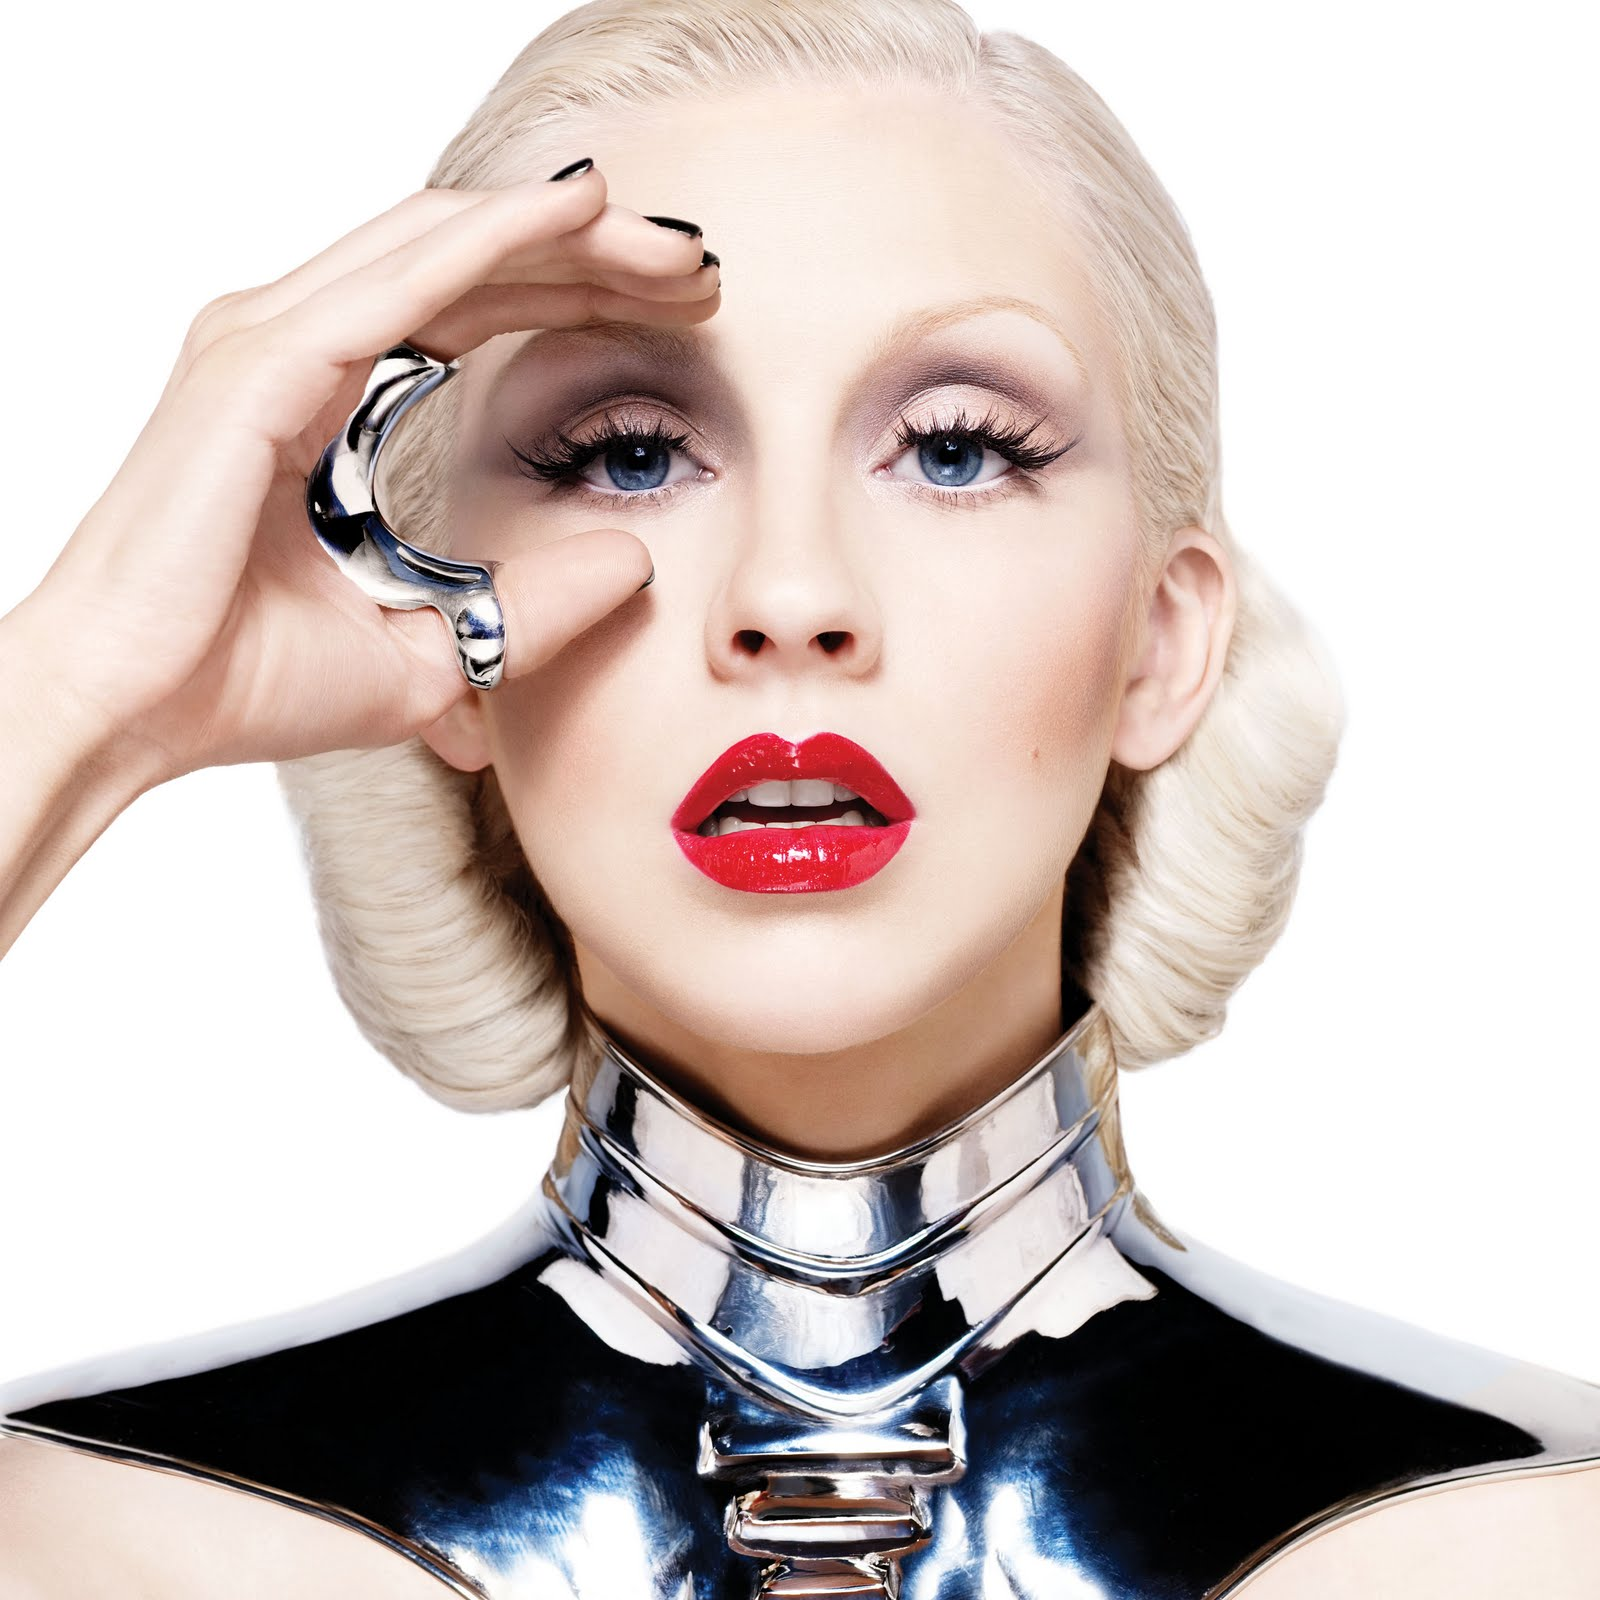 whats the name of the remix of the songs from the album bionic, christina aguilera?